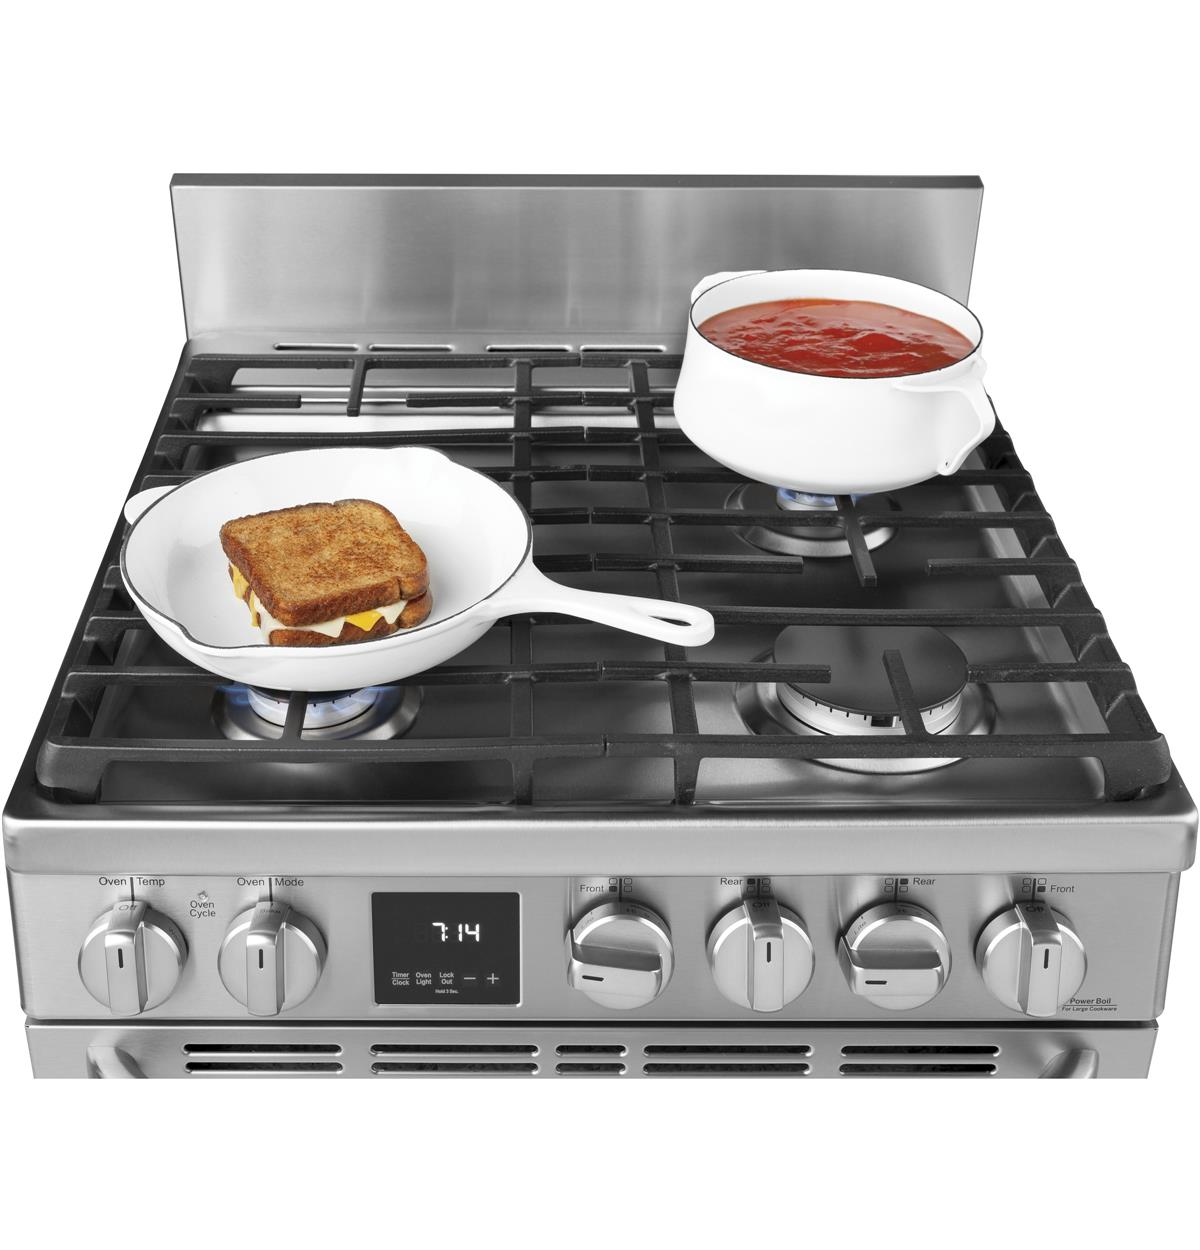 Allows easy movement of cookware while providing even heat distribution with better heat retention